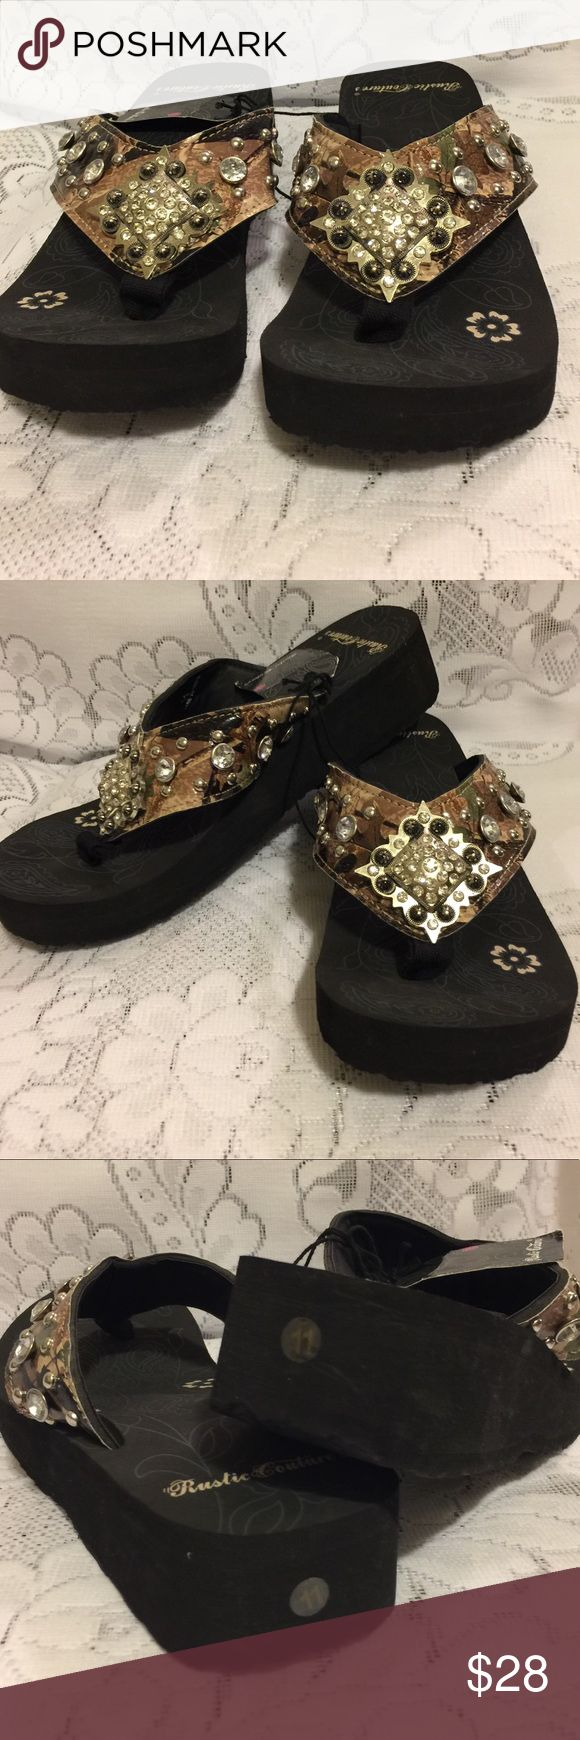 Brand New with tag Bling Flip-Flops Size 11 Brand New Camouflage bling Flip - Flops Size 11 Shoes Sandals